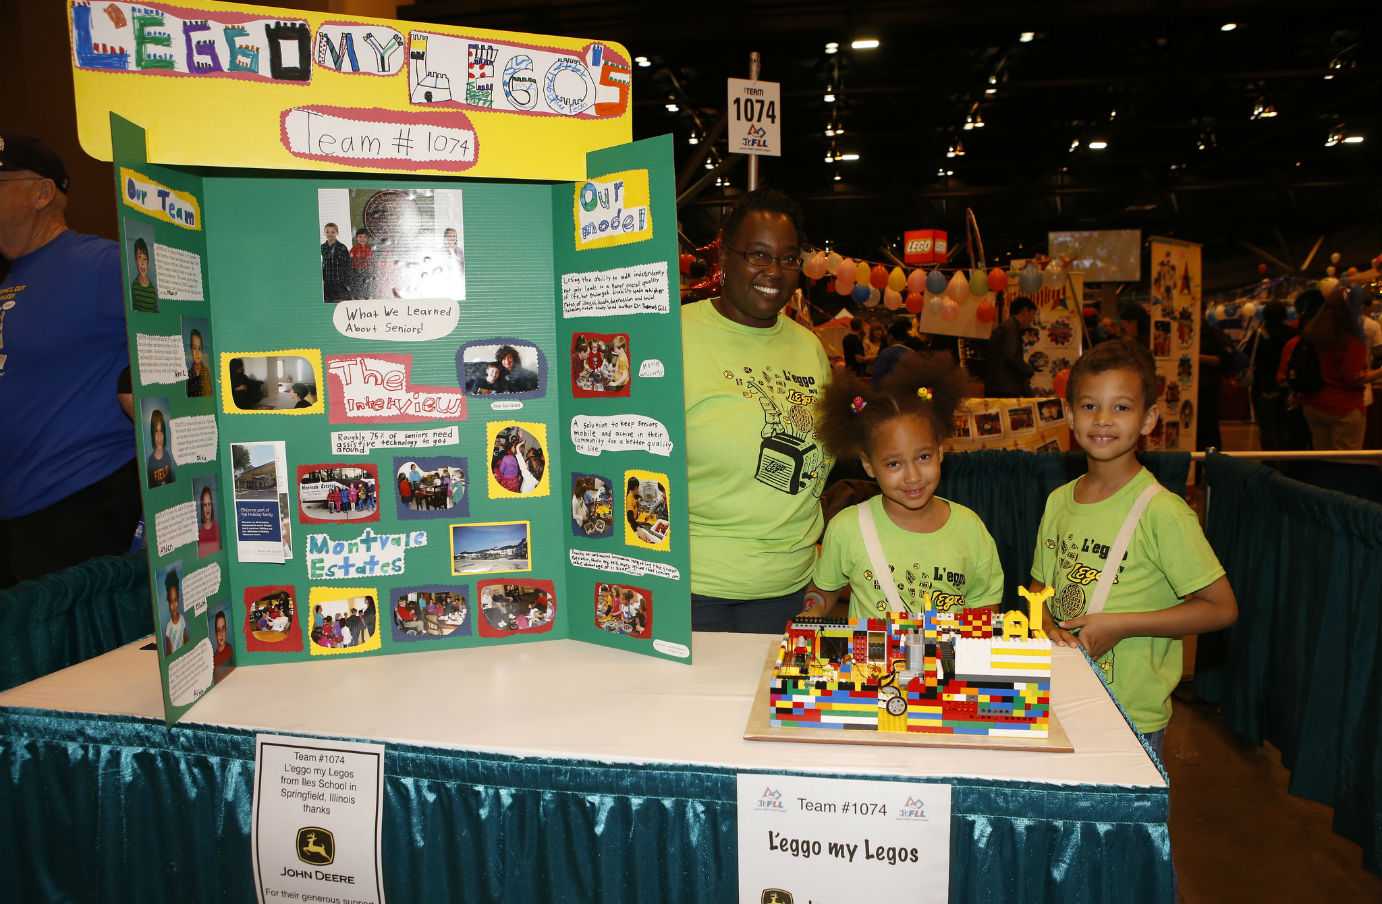 Lego League Jr